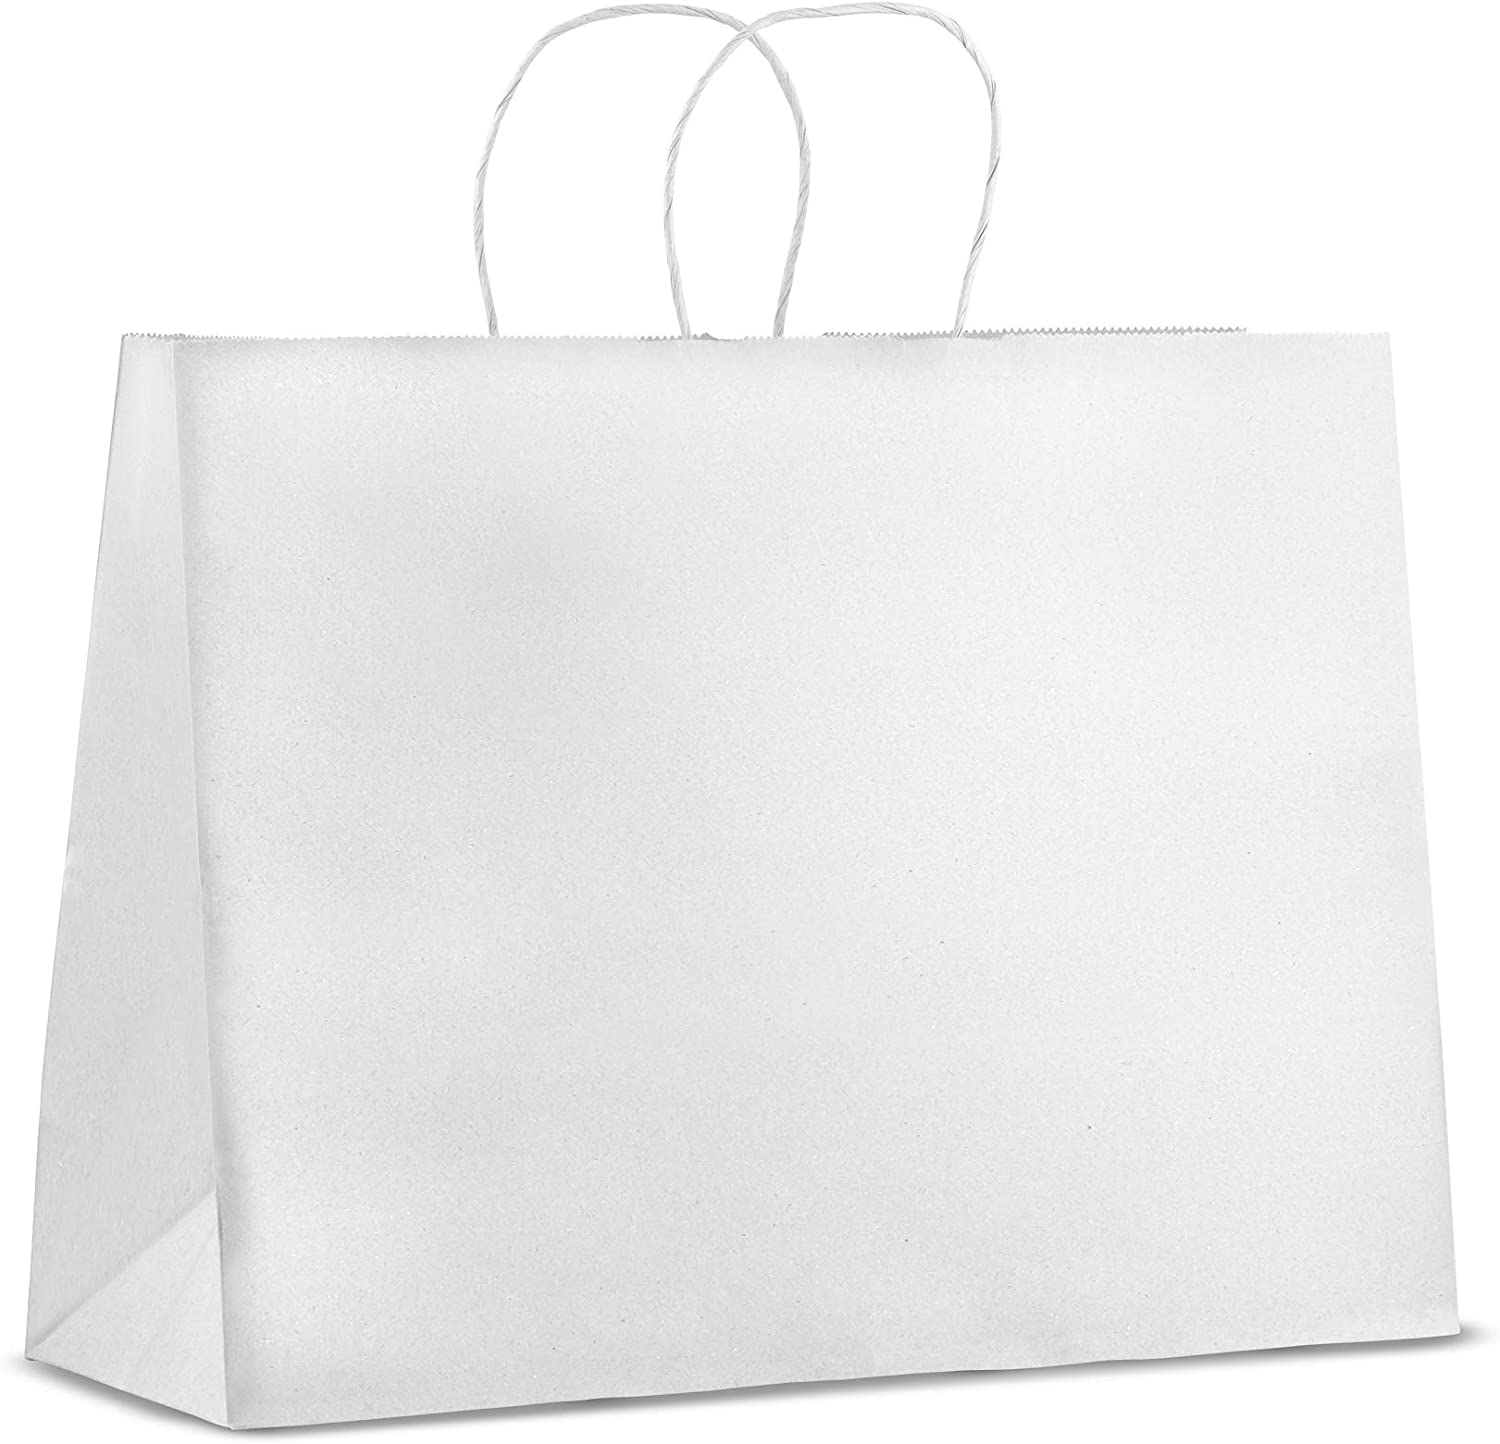 50 Pack - Premium Quality - Trendy Storage Kraft Paper Bags with Handles | Bulk Large White Paper Gift Bags, Perfect Kraft Bag, Party Bag or Shopping Bag (16